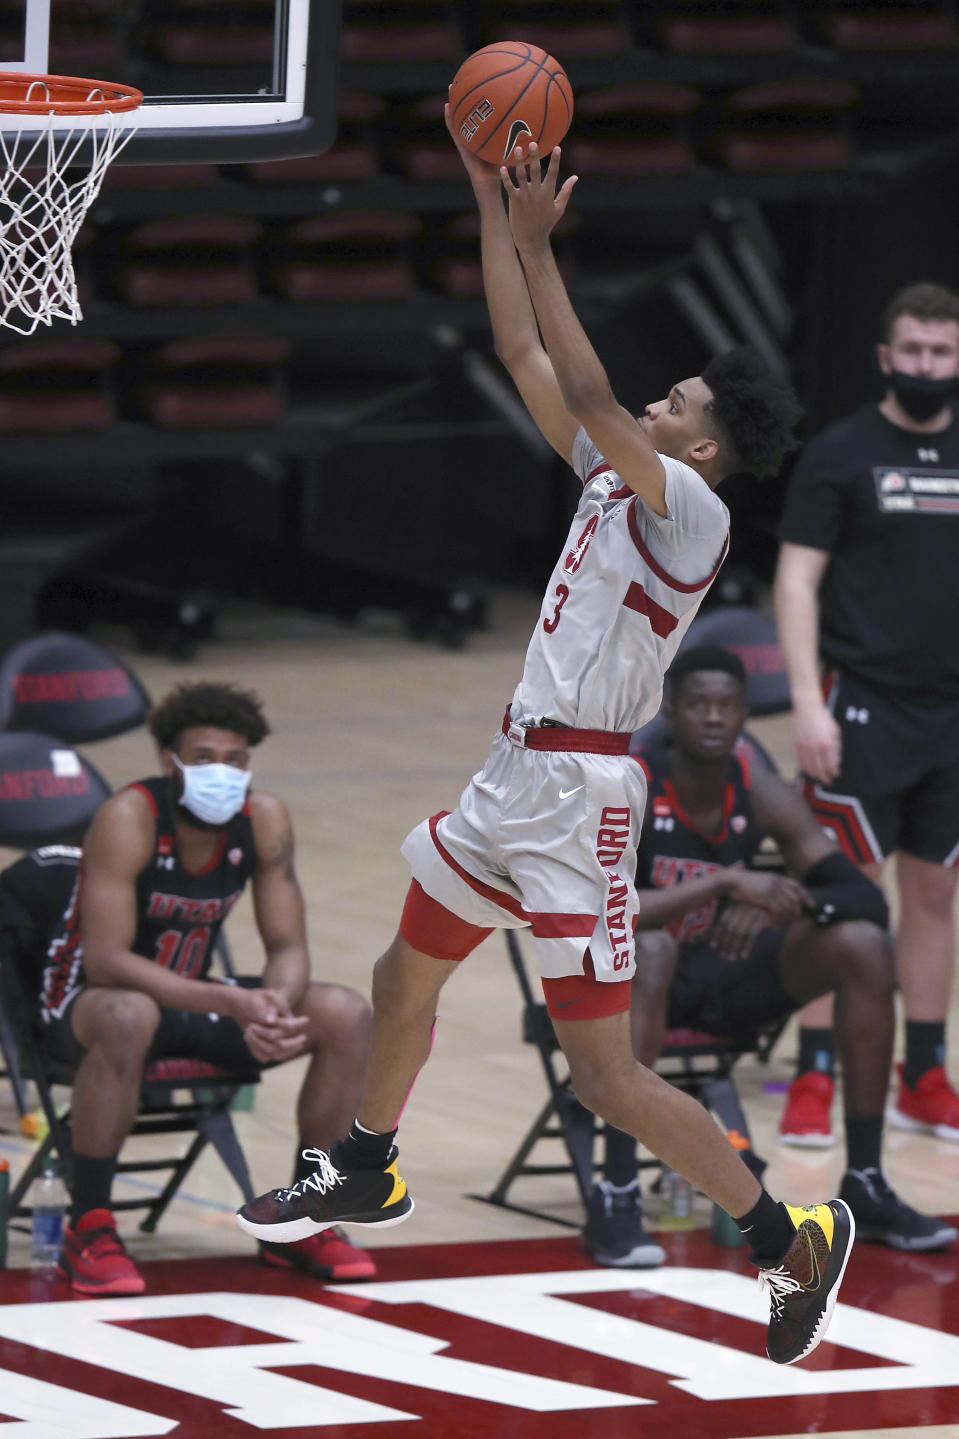 Stanford forward Ziaire Williams (3) scores during the first half of the team's NCAA college basketball game against Utah on Saturday, Feb. 13, 2021, in Stanford, Calif. (AP Photo/Scot Tucker)